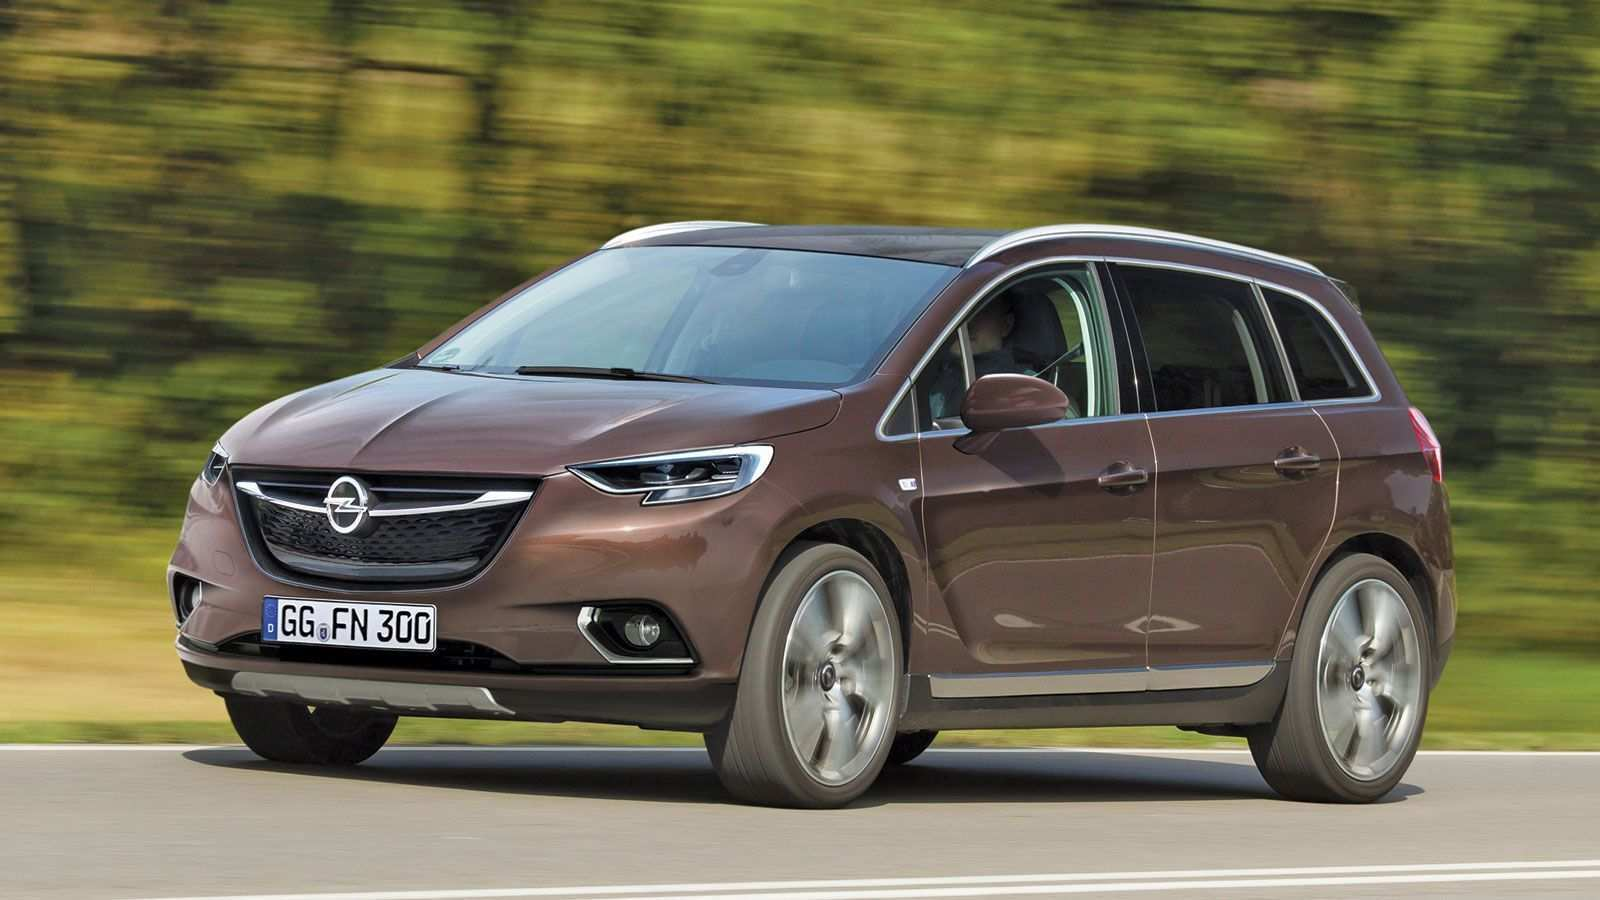 11 Best Opel Meriva 2020 Price And Review